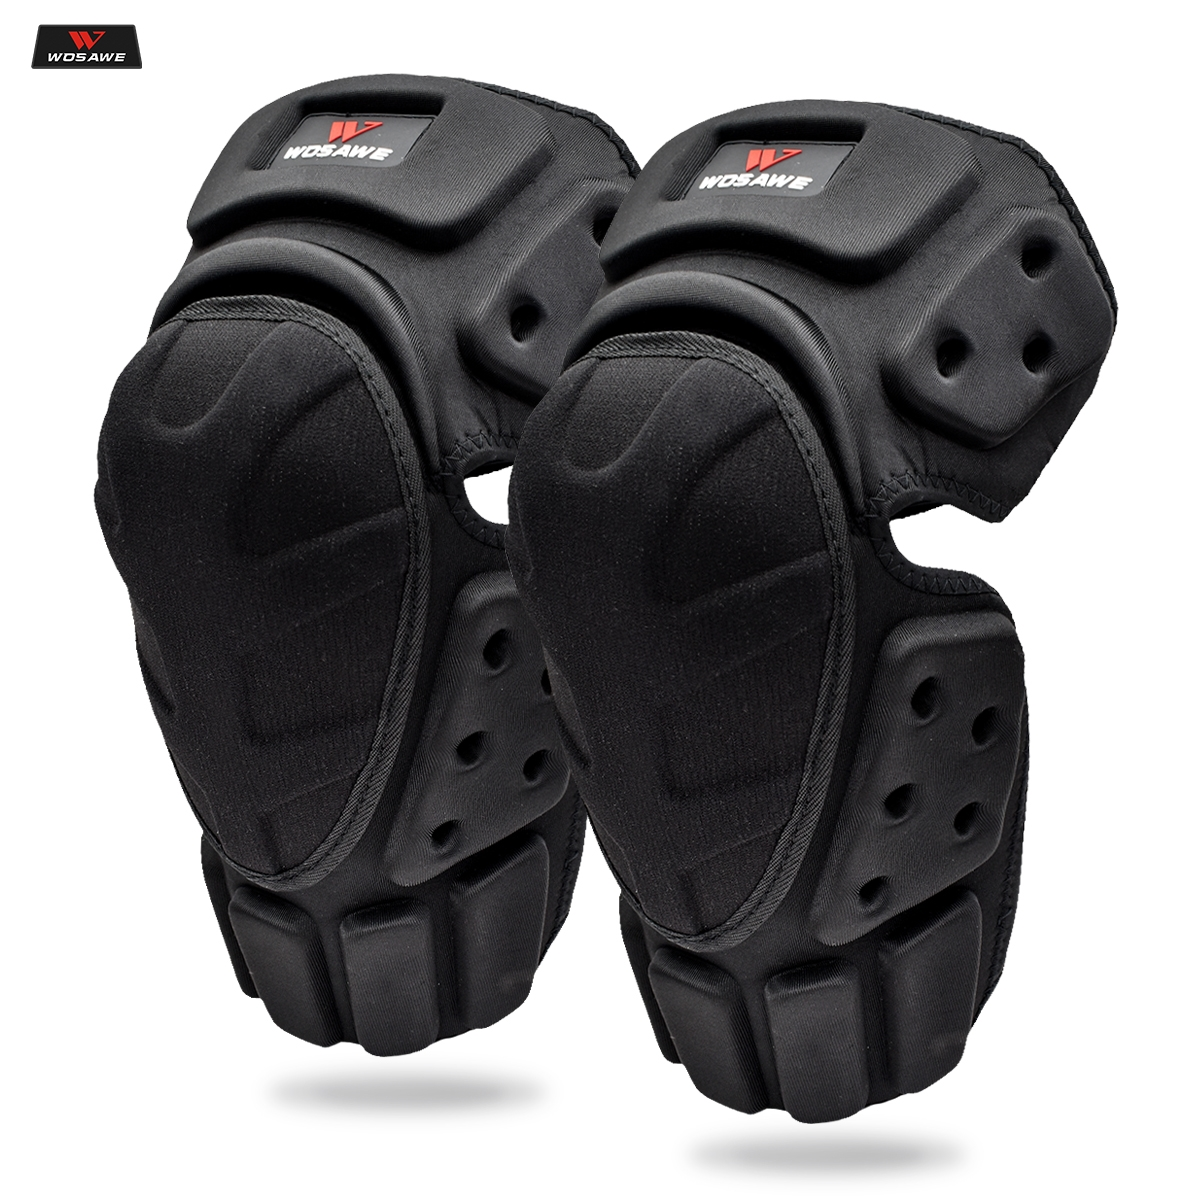 WOSAWE Motorcycle Knee Pads Motocross Knee Protector Off Road Safety Knee Brace Support MTB Ski Sports Protective Gear